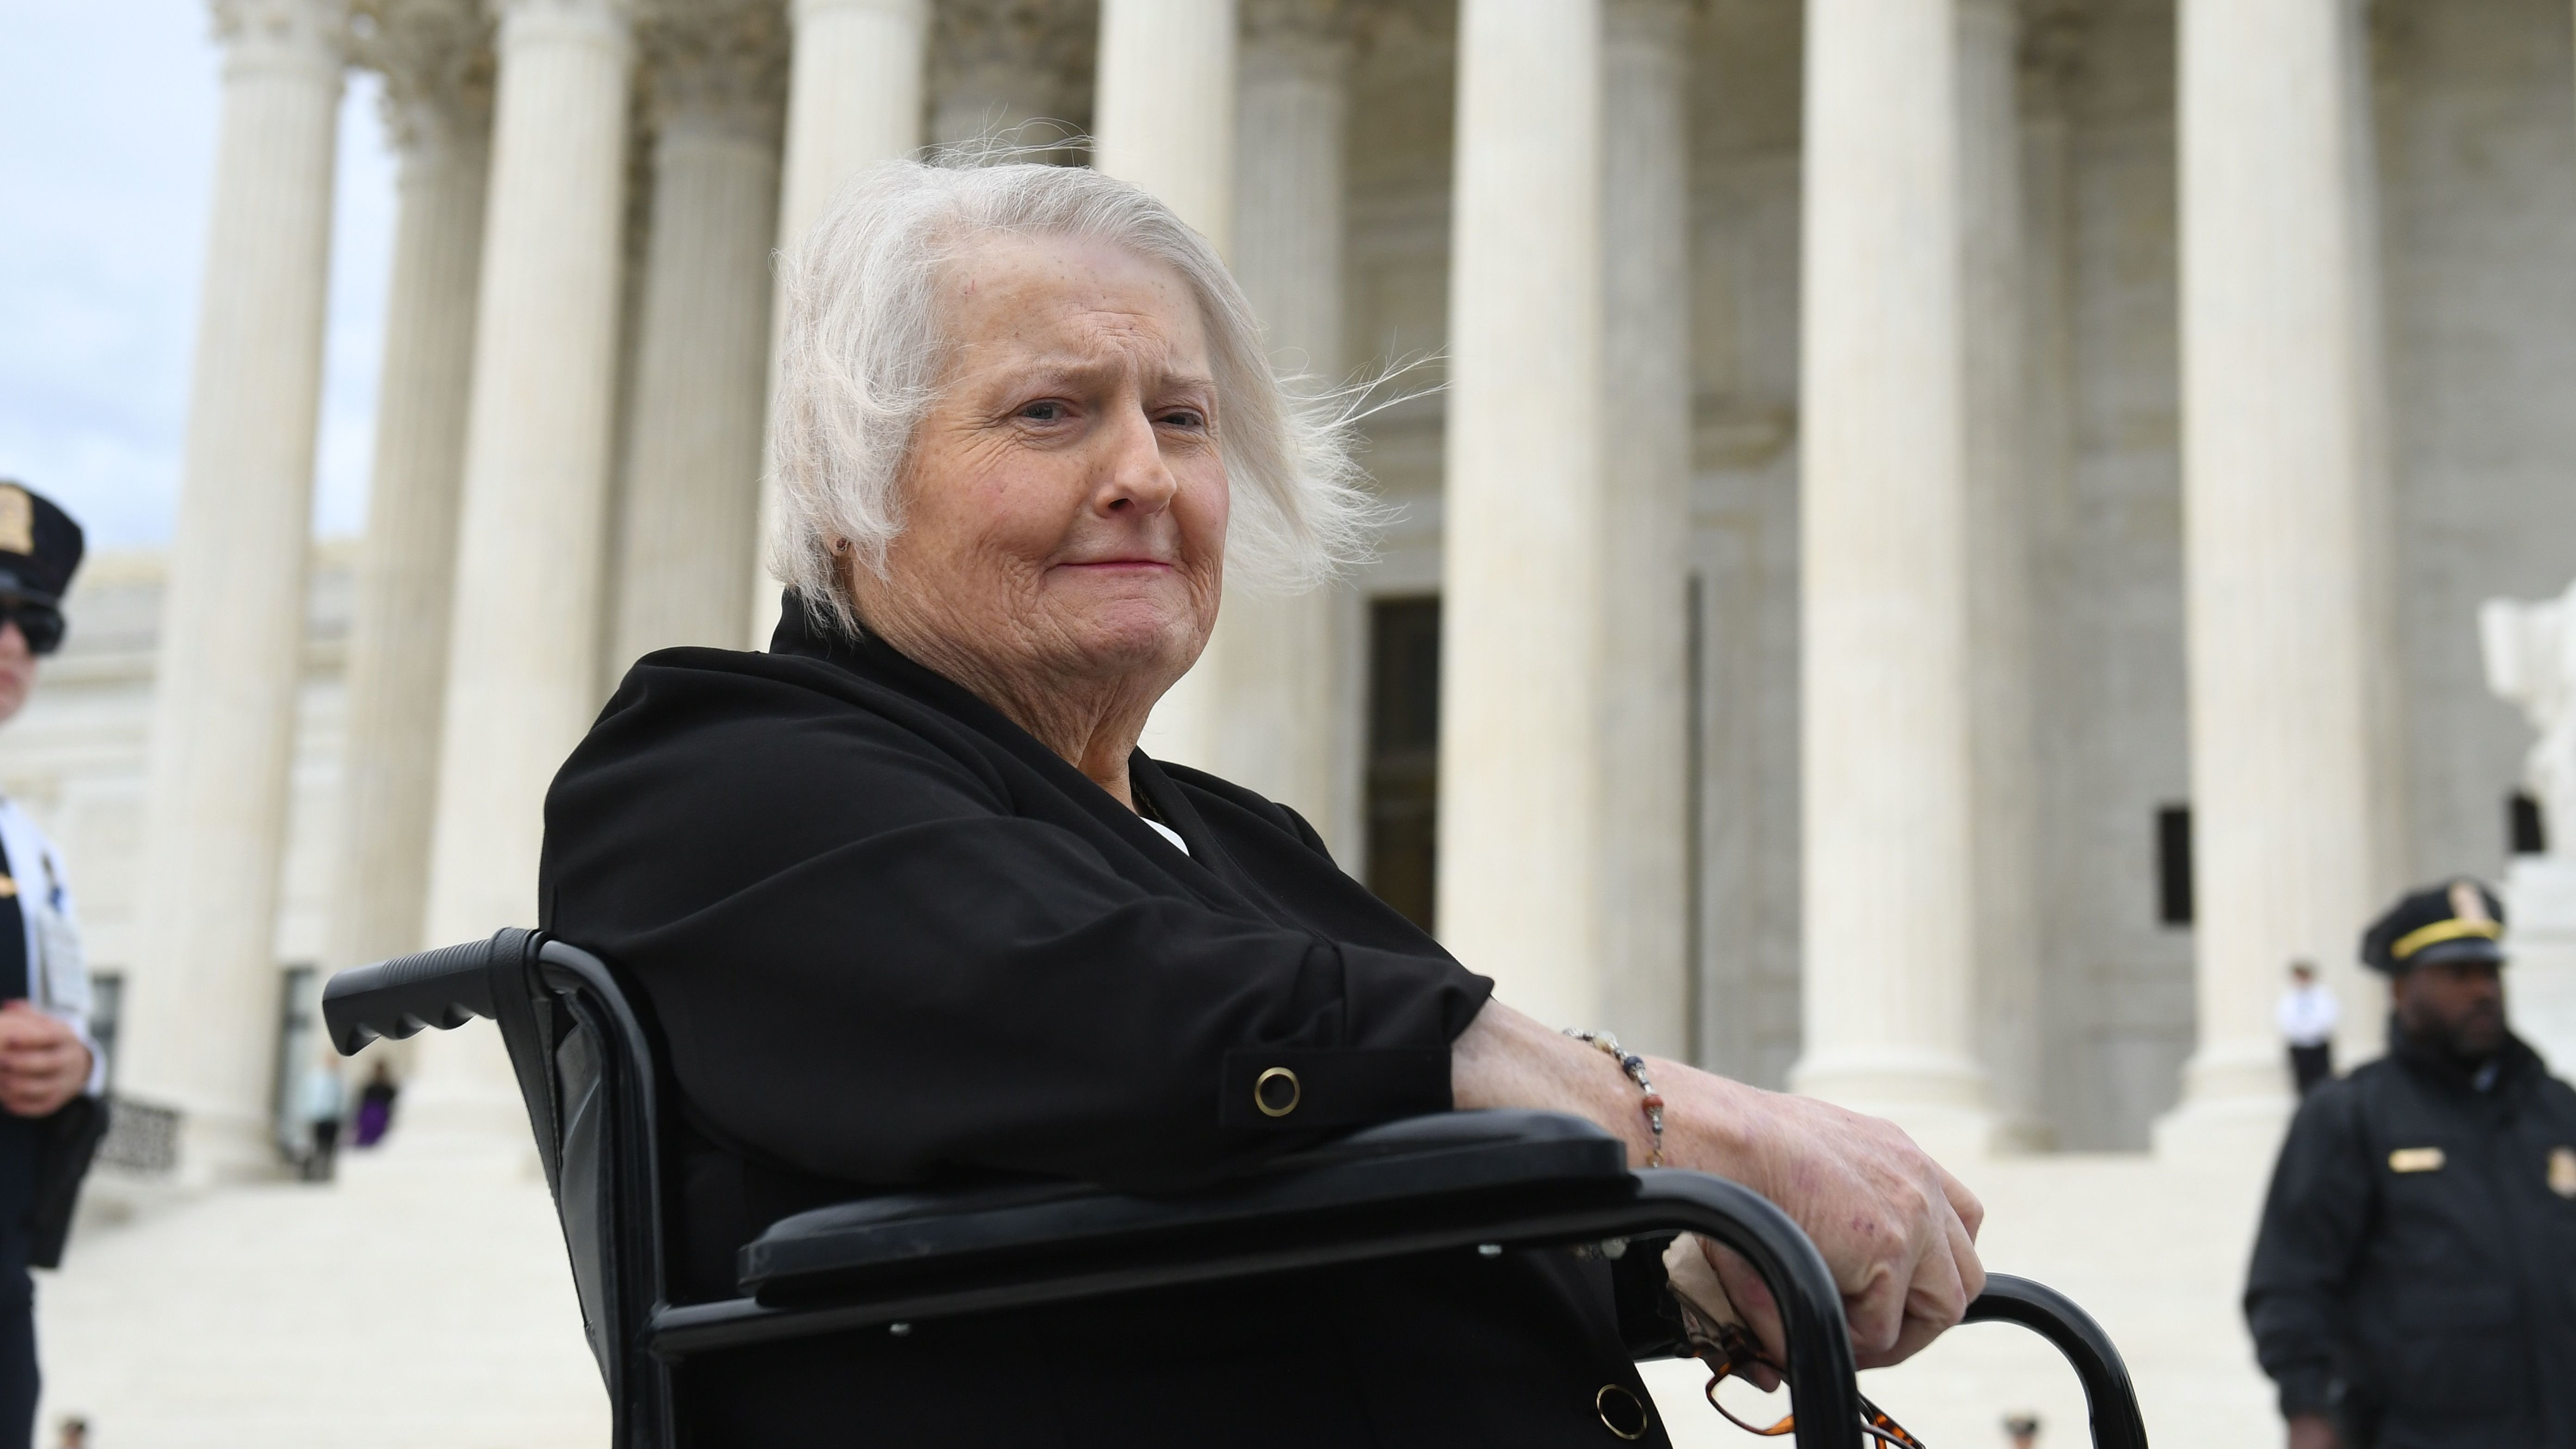 Transgender activist Aimee Stephens sits outside the Supreme Court on Oct. 8 as the court holds oral arguments in cases dealing with workplace discrimination based on sexual orientation.